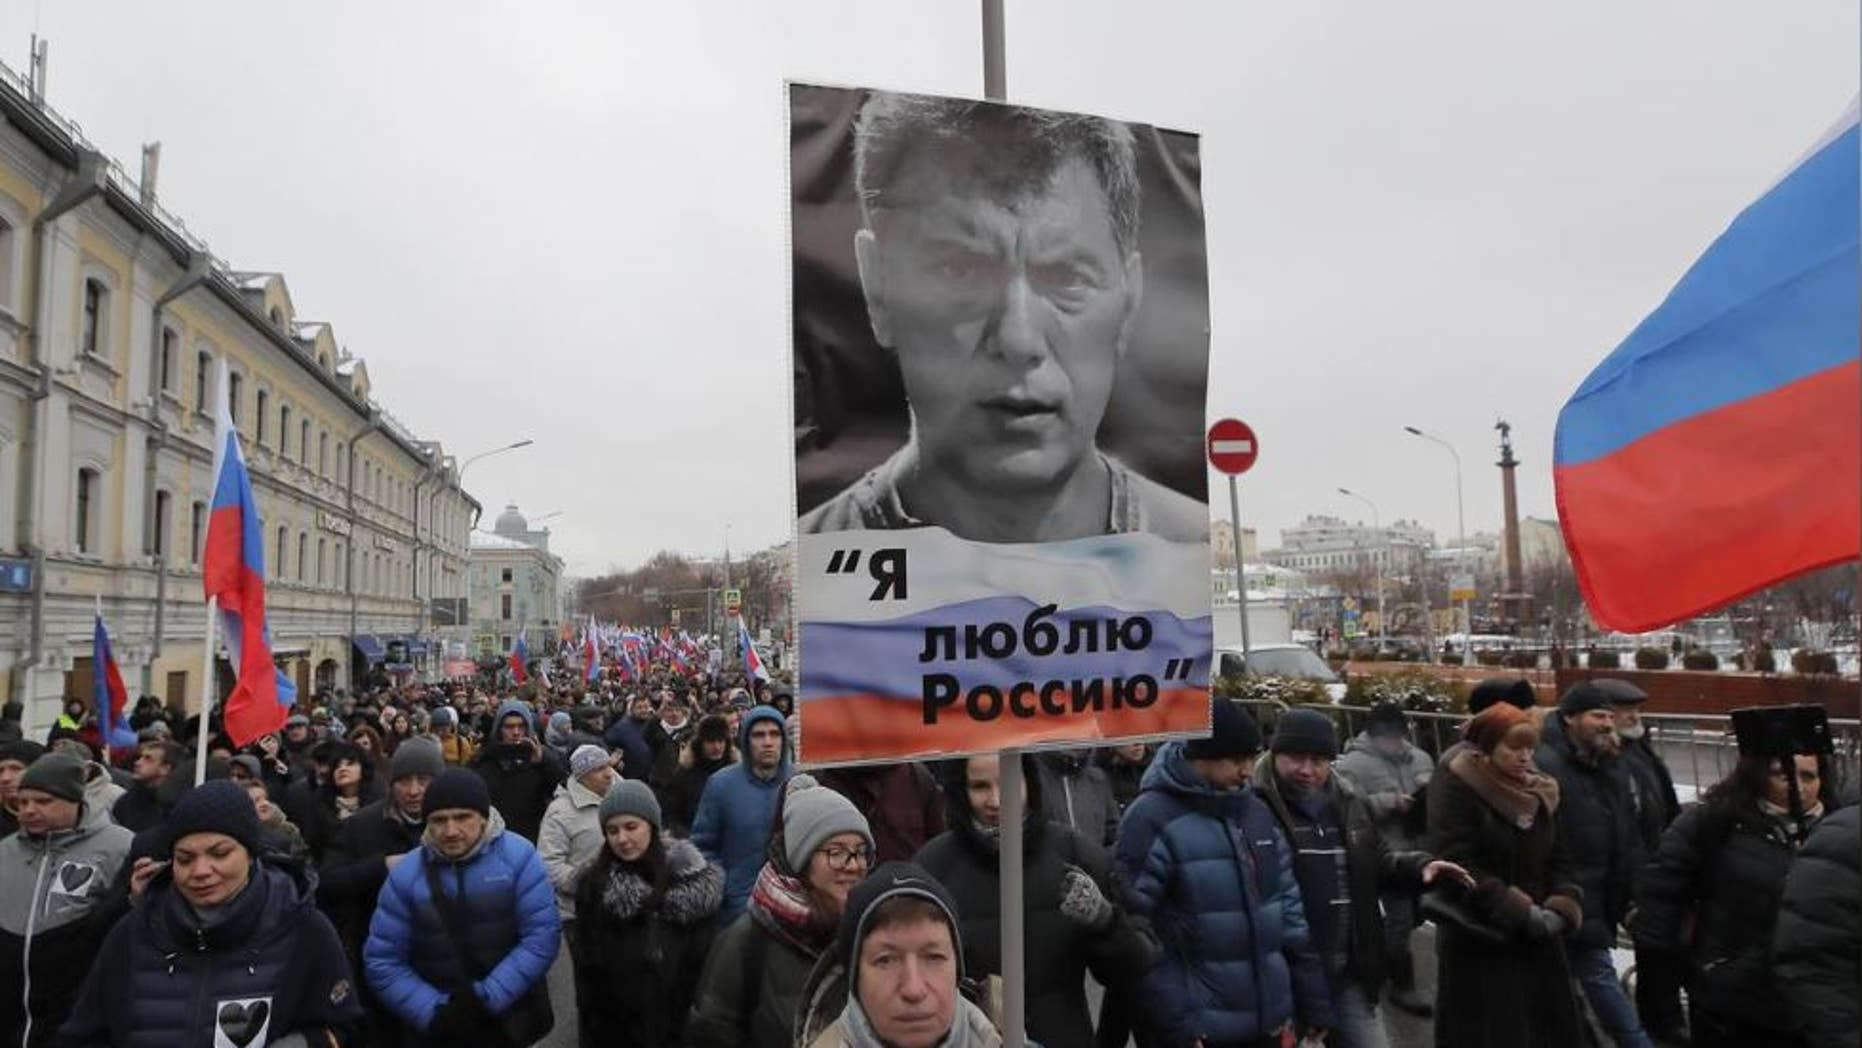 "People attend a rally in memory of Russian opposition politician Boris Nemtsov, who was assassinated in 2015, in Moscow, Russia February 24, 2019. The placard reads ""I love Russia""."